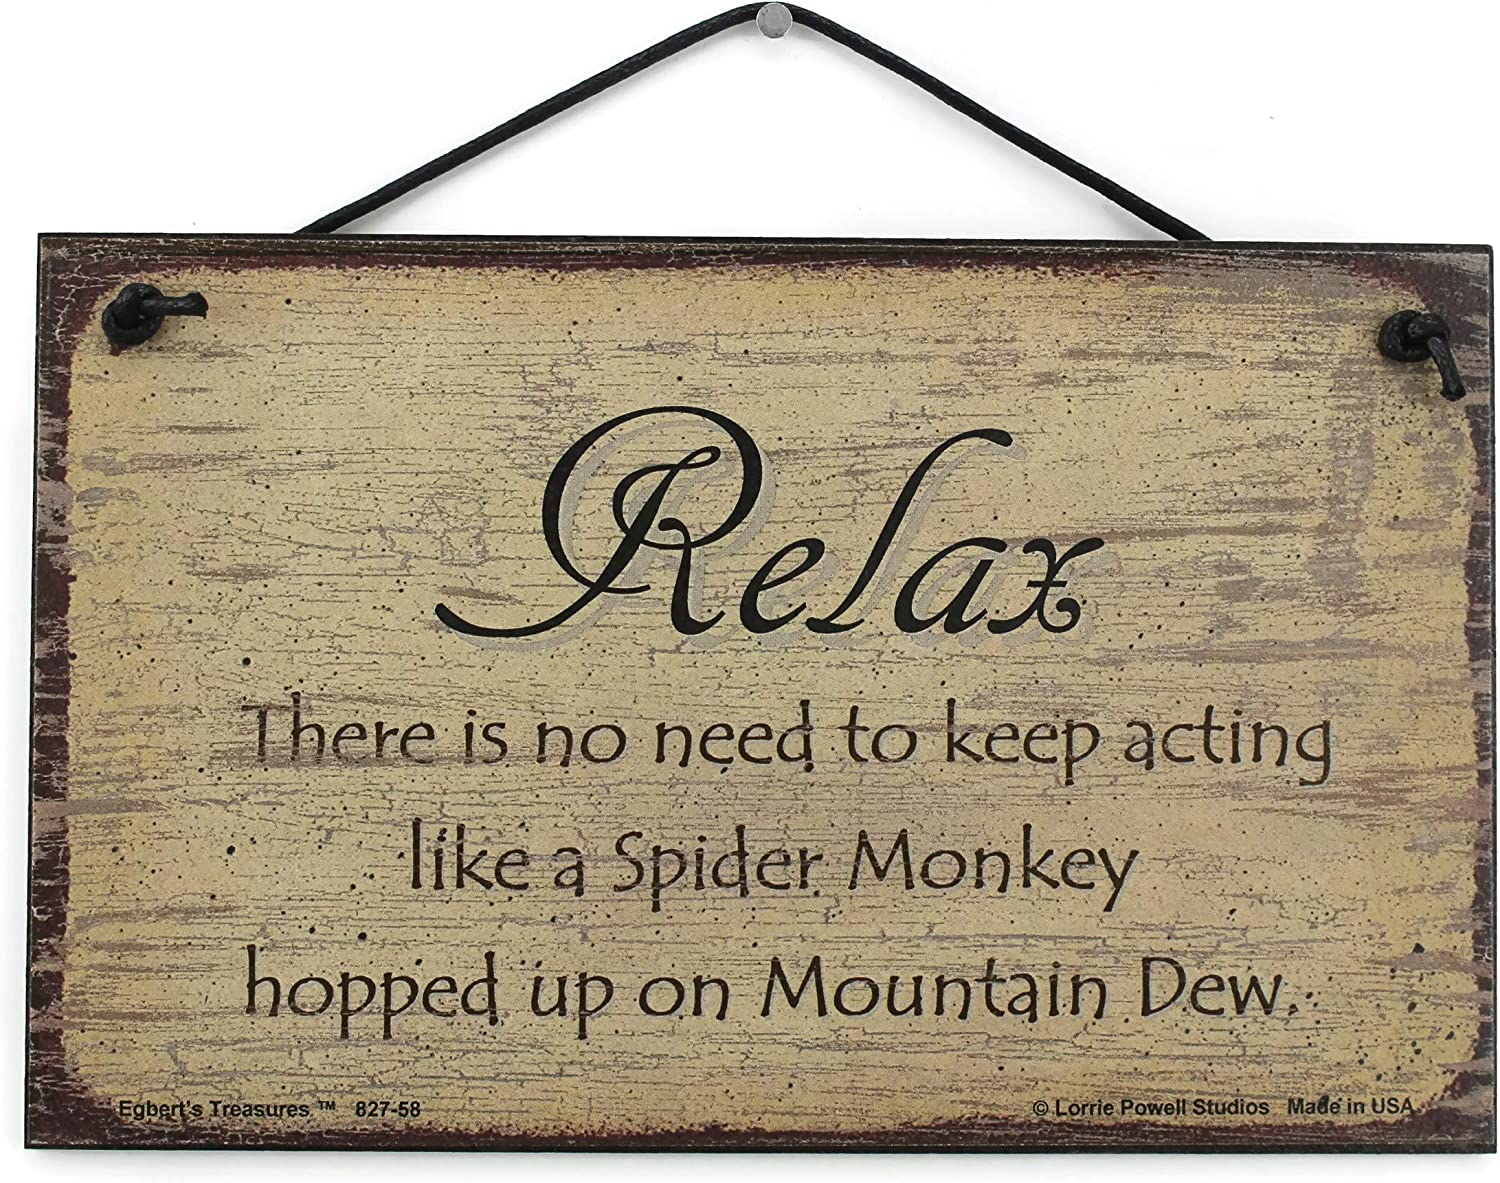 """5x8 Vintage Style Sign Saying,""""RELAX There is no need to keep acting like a Spider Monkey hopped up on Mountain Dew."""" Decorative Fun Universal Household Signs from Egbert's Treasures"""